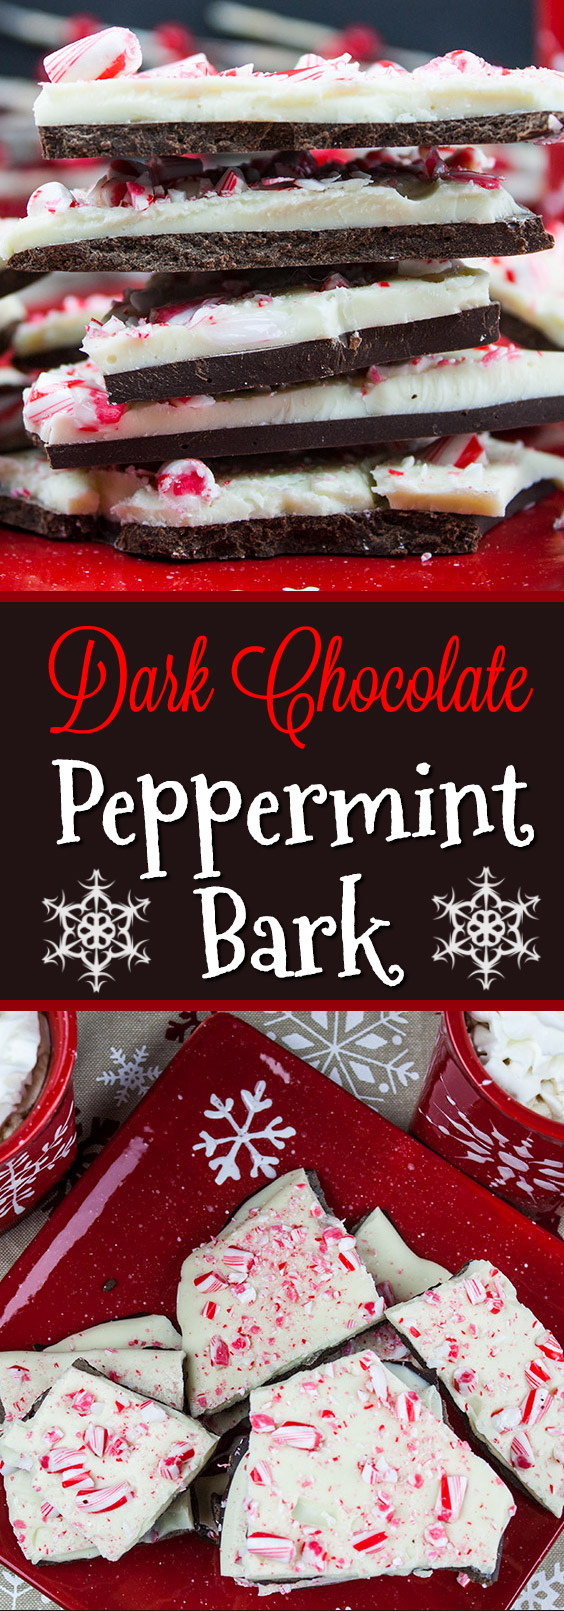 Dark Chocolate Peppermint Bark - One of the easiest holiday treats. Smooth, dark chocolate, creamy white chocolate studded with crushed candy canes!